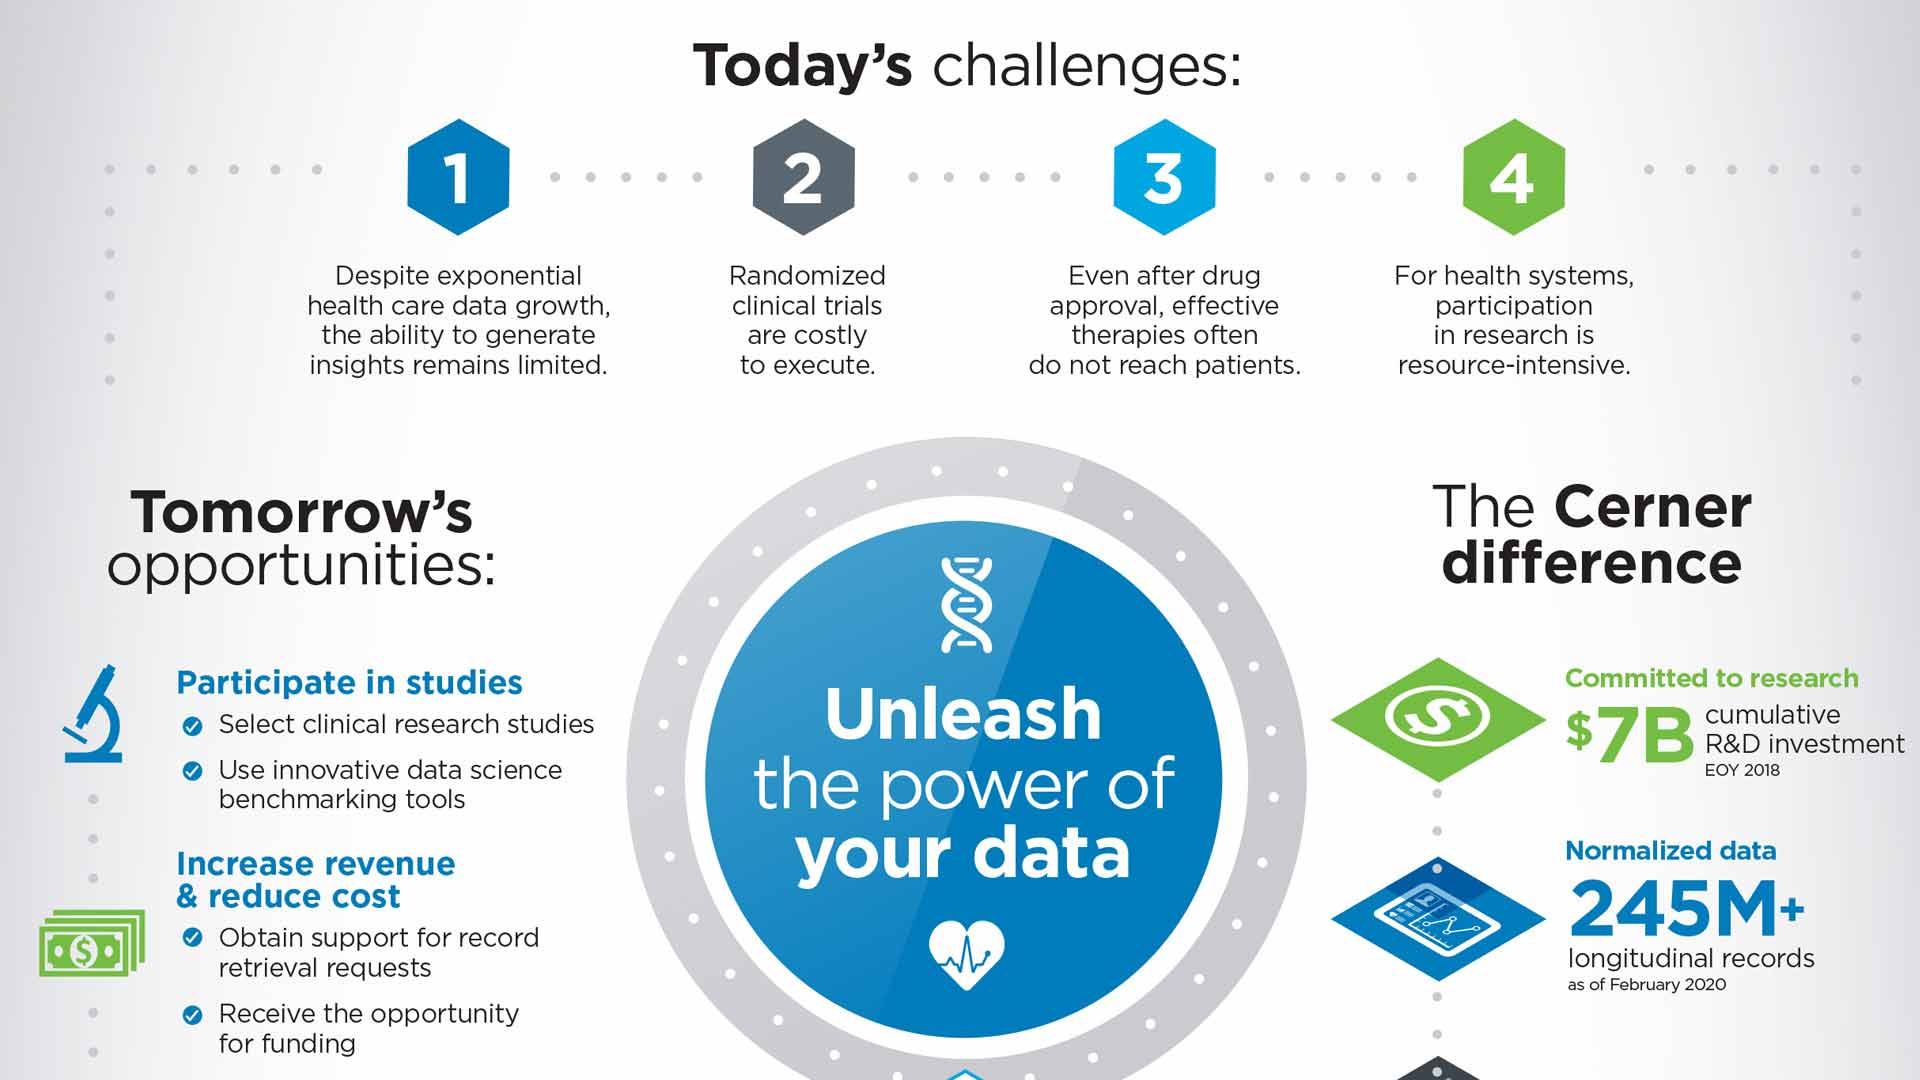 learning-health-network-infographic-image_Today's challenges infographic